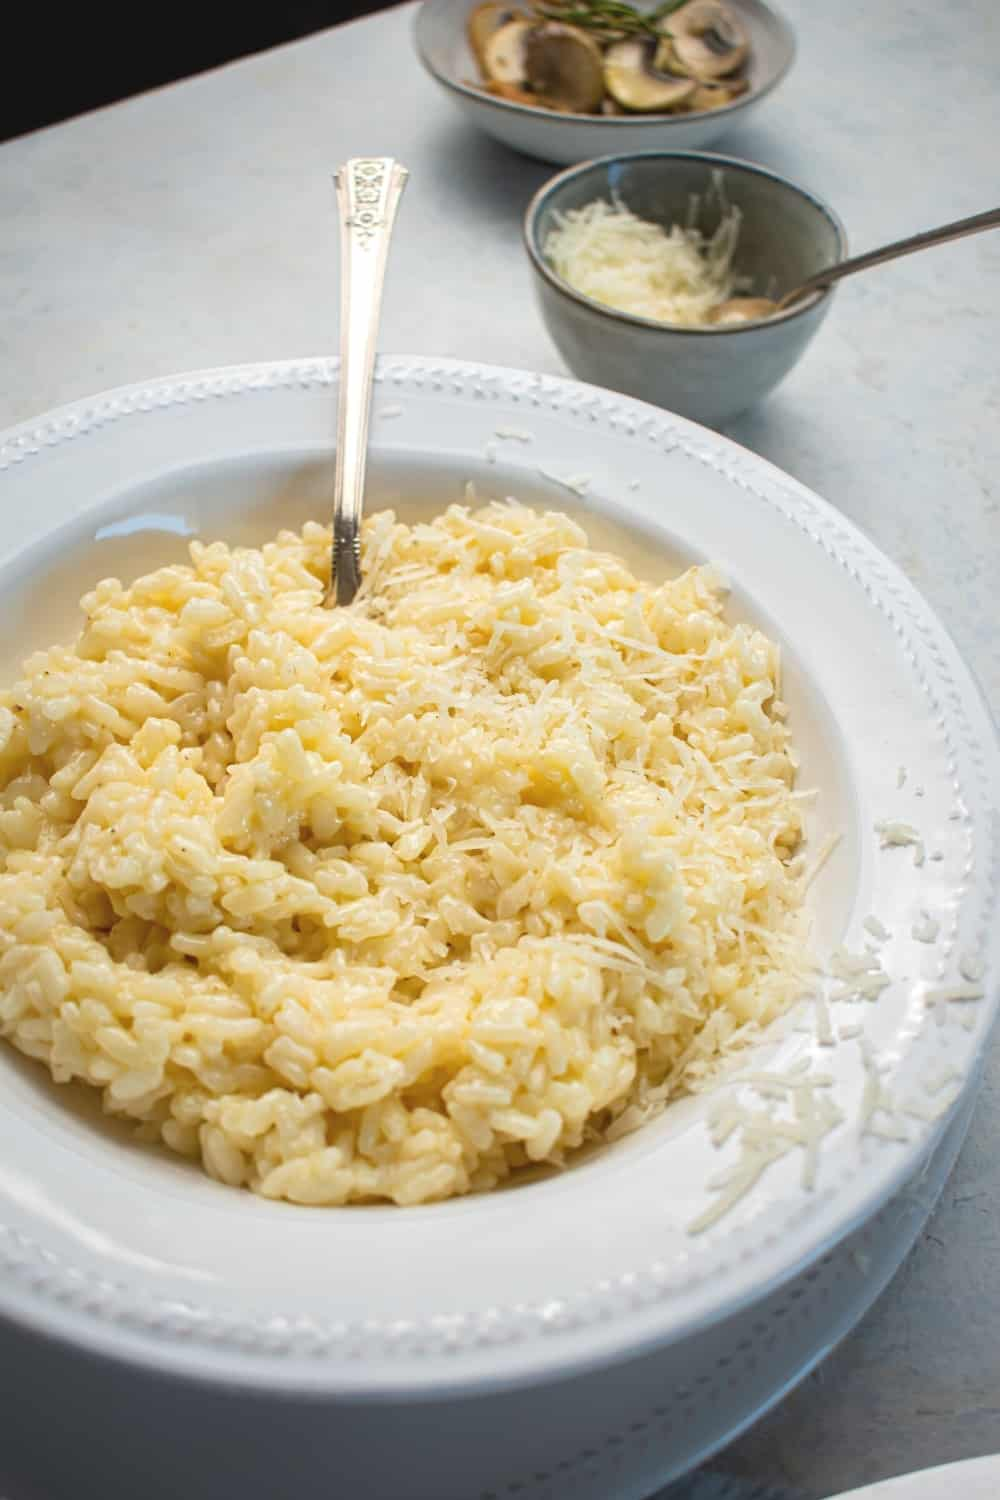 Part of a white plate with part of a white bowl on it filled with risotto with a spoon submerged in it. Behind a bowl of risotto is a small bowl of Parmesan cheese and part of a bowl of mushrooms.